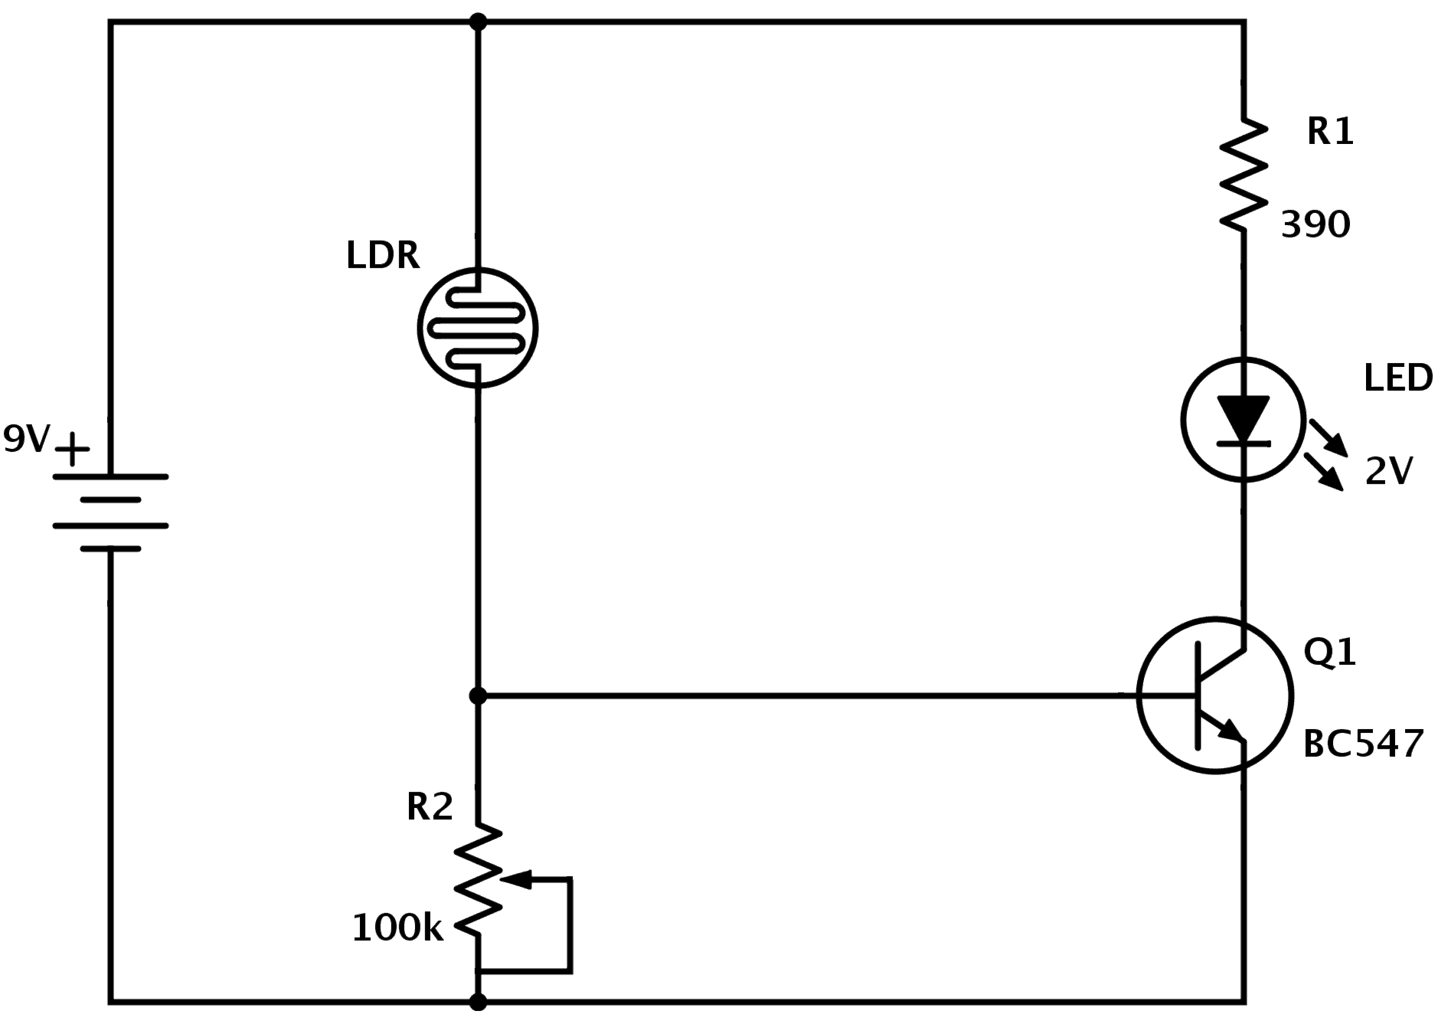 circuit schematics wiring diagram